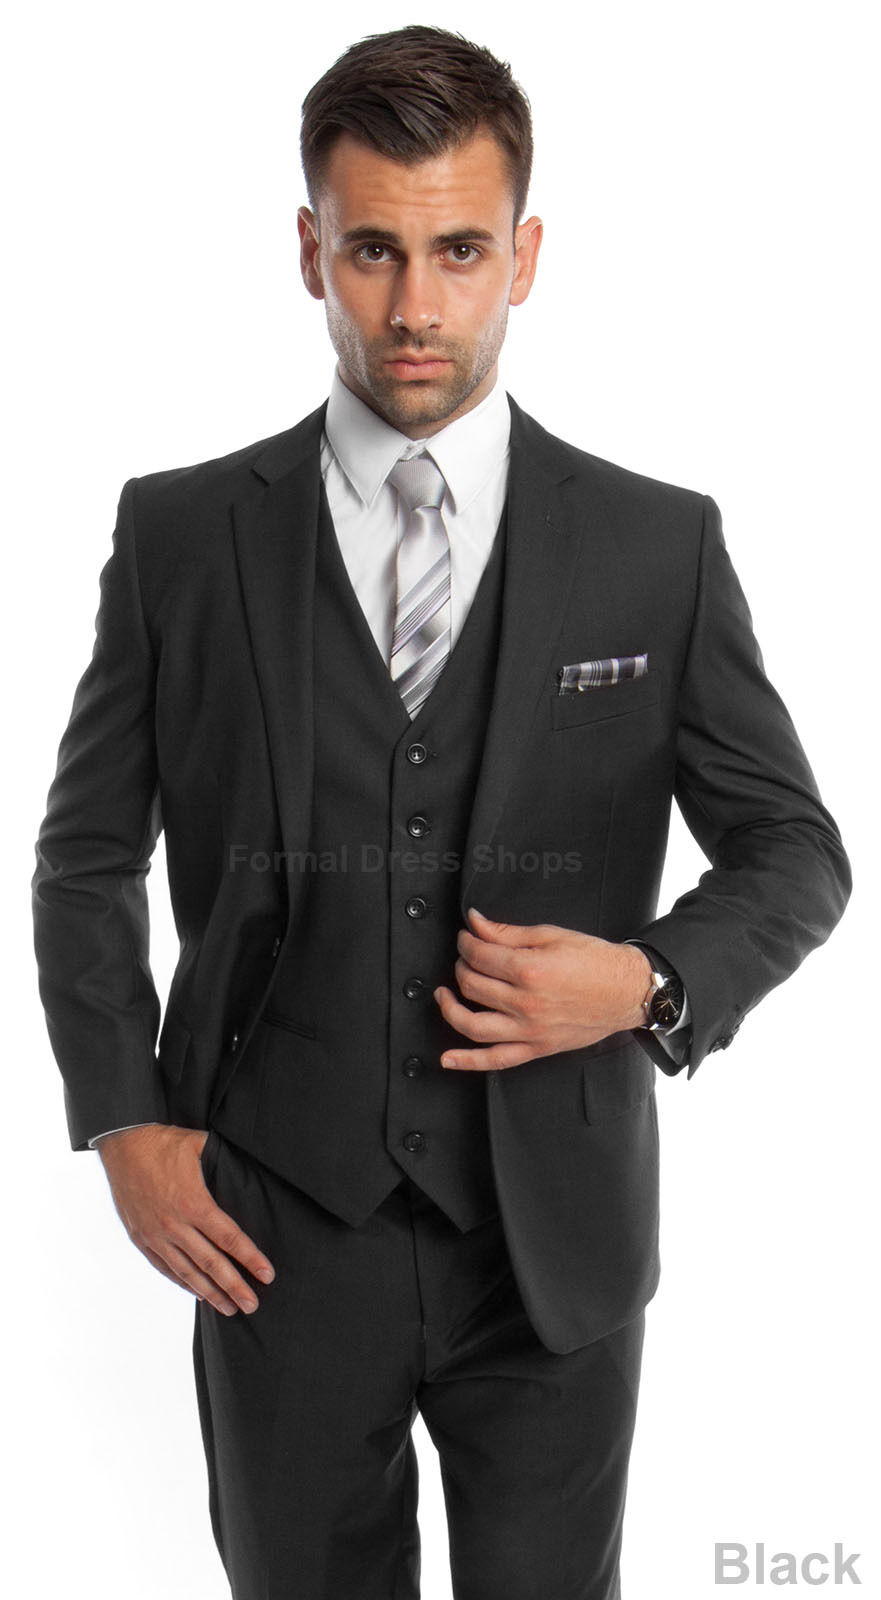 NEW 3 PIECE MEN'S SOLID SUIT FORMAL PROM DANCE PARTY WEDDING FATHER OF THE GROOM